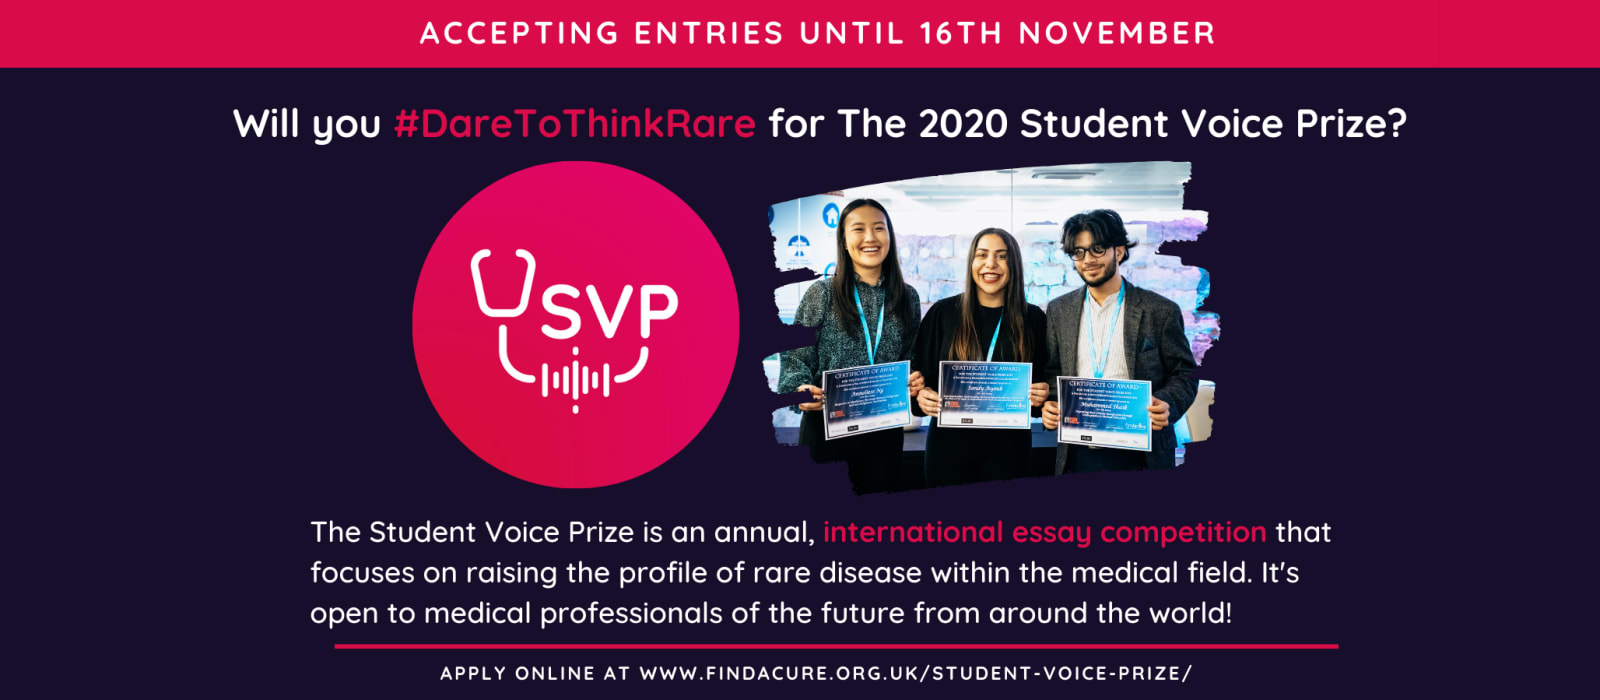 A banner explaining what the Student Voice Prize competition is